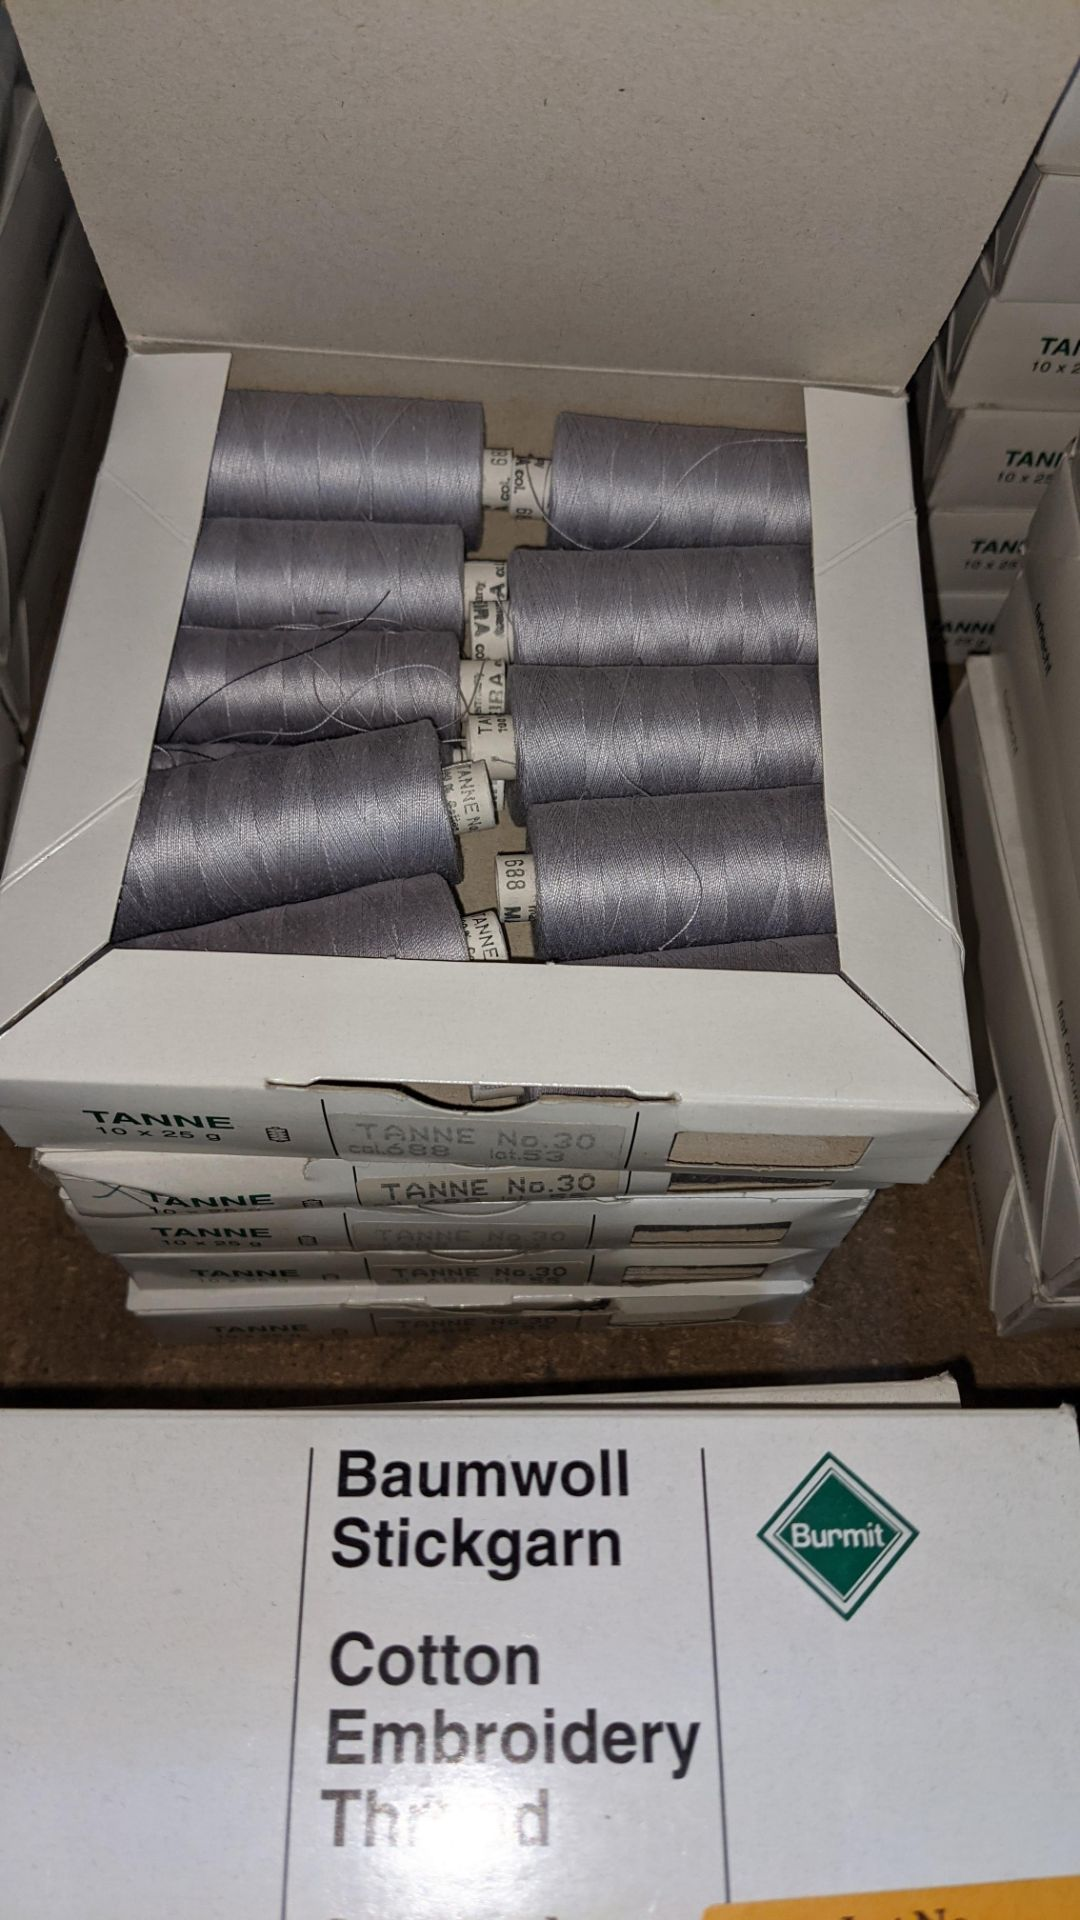 16 boxes of Madeira Tanne (Burmit) cotton embroidery thread - Image 7 of 8